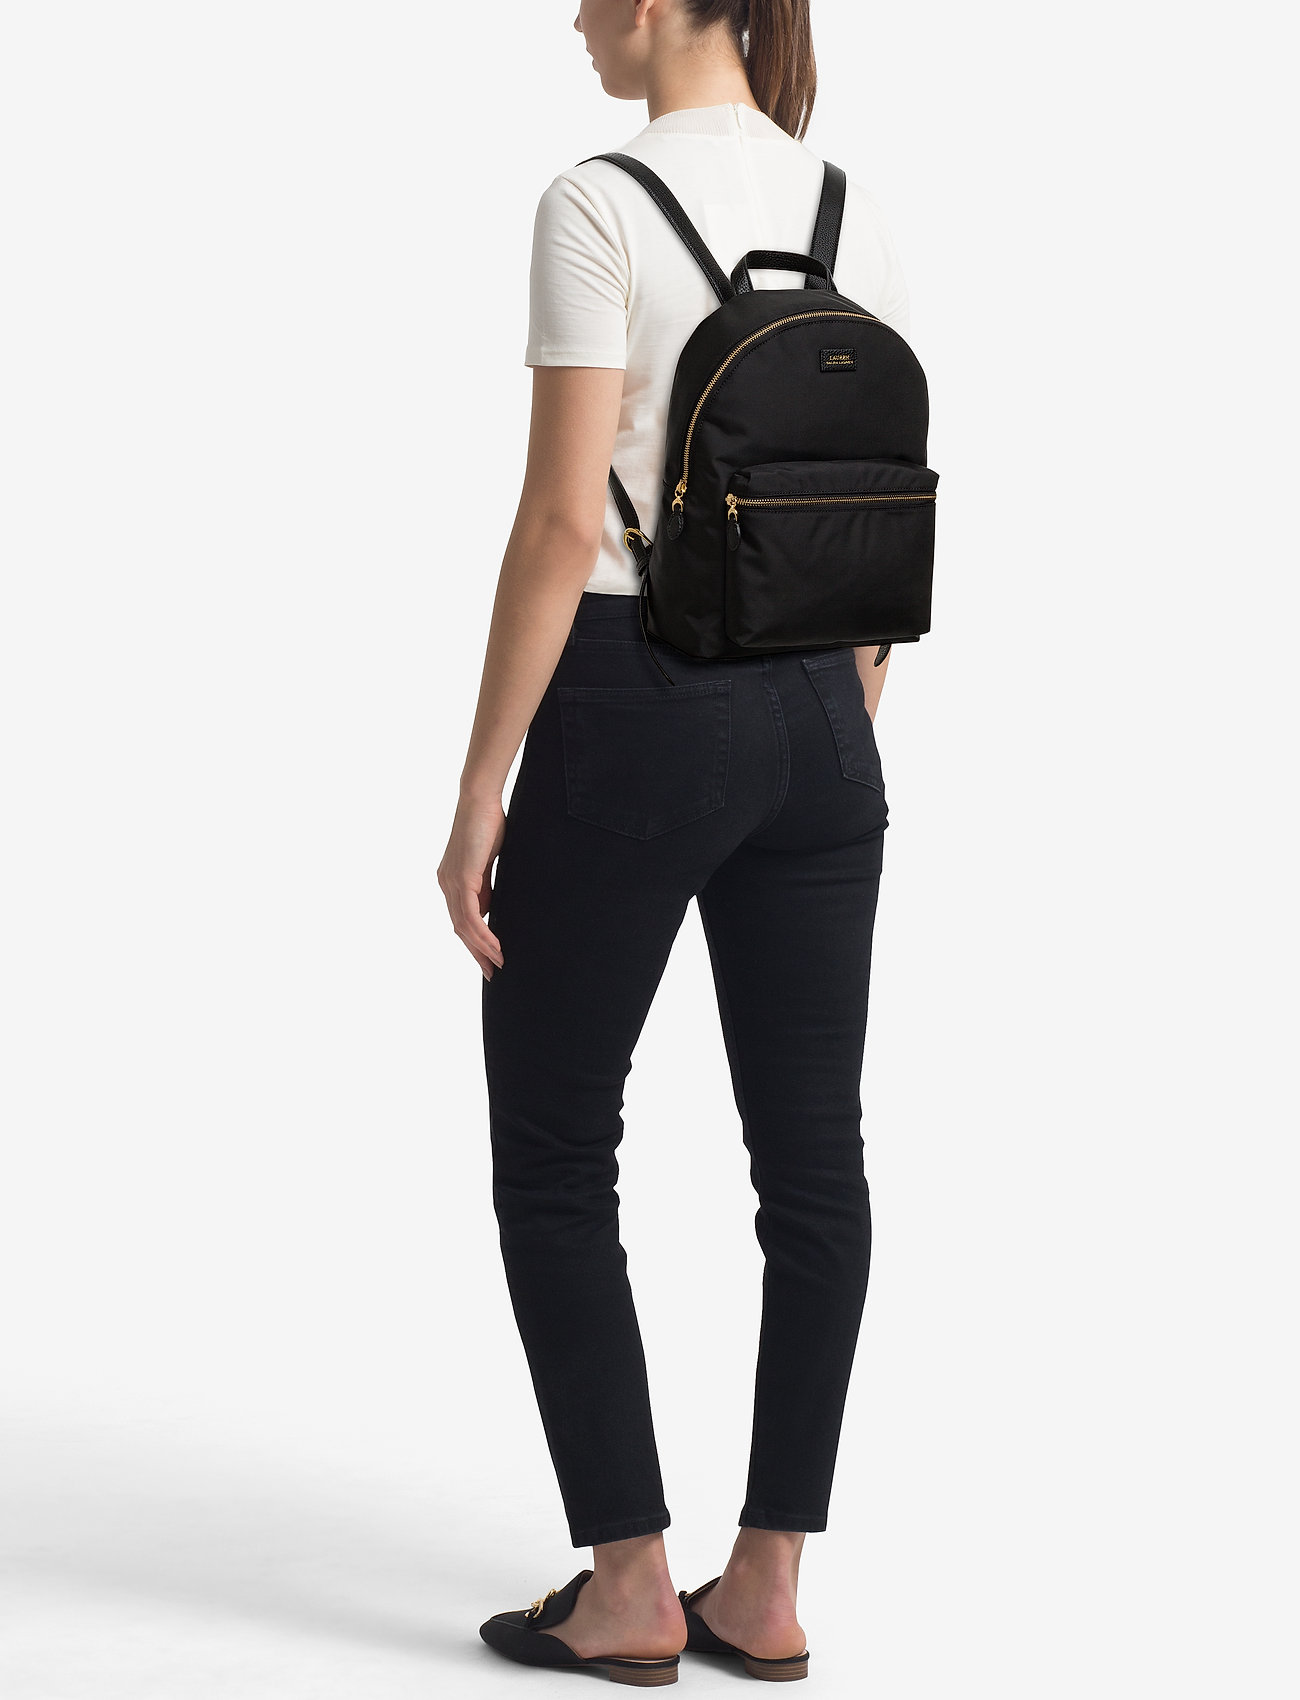 Lauren Ralph Lauren Nylon Backpack